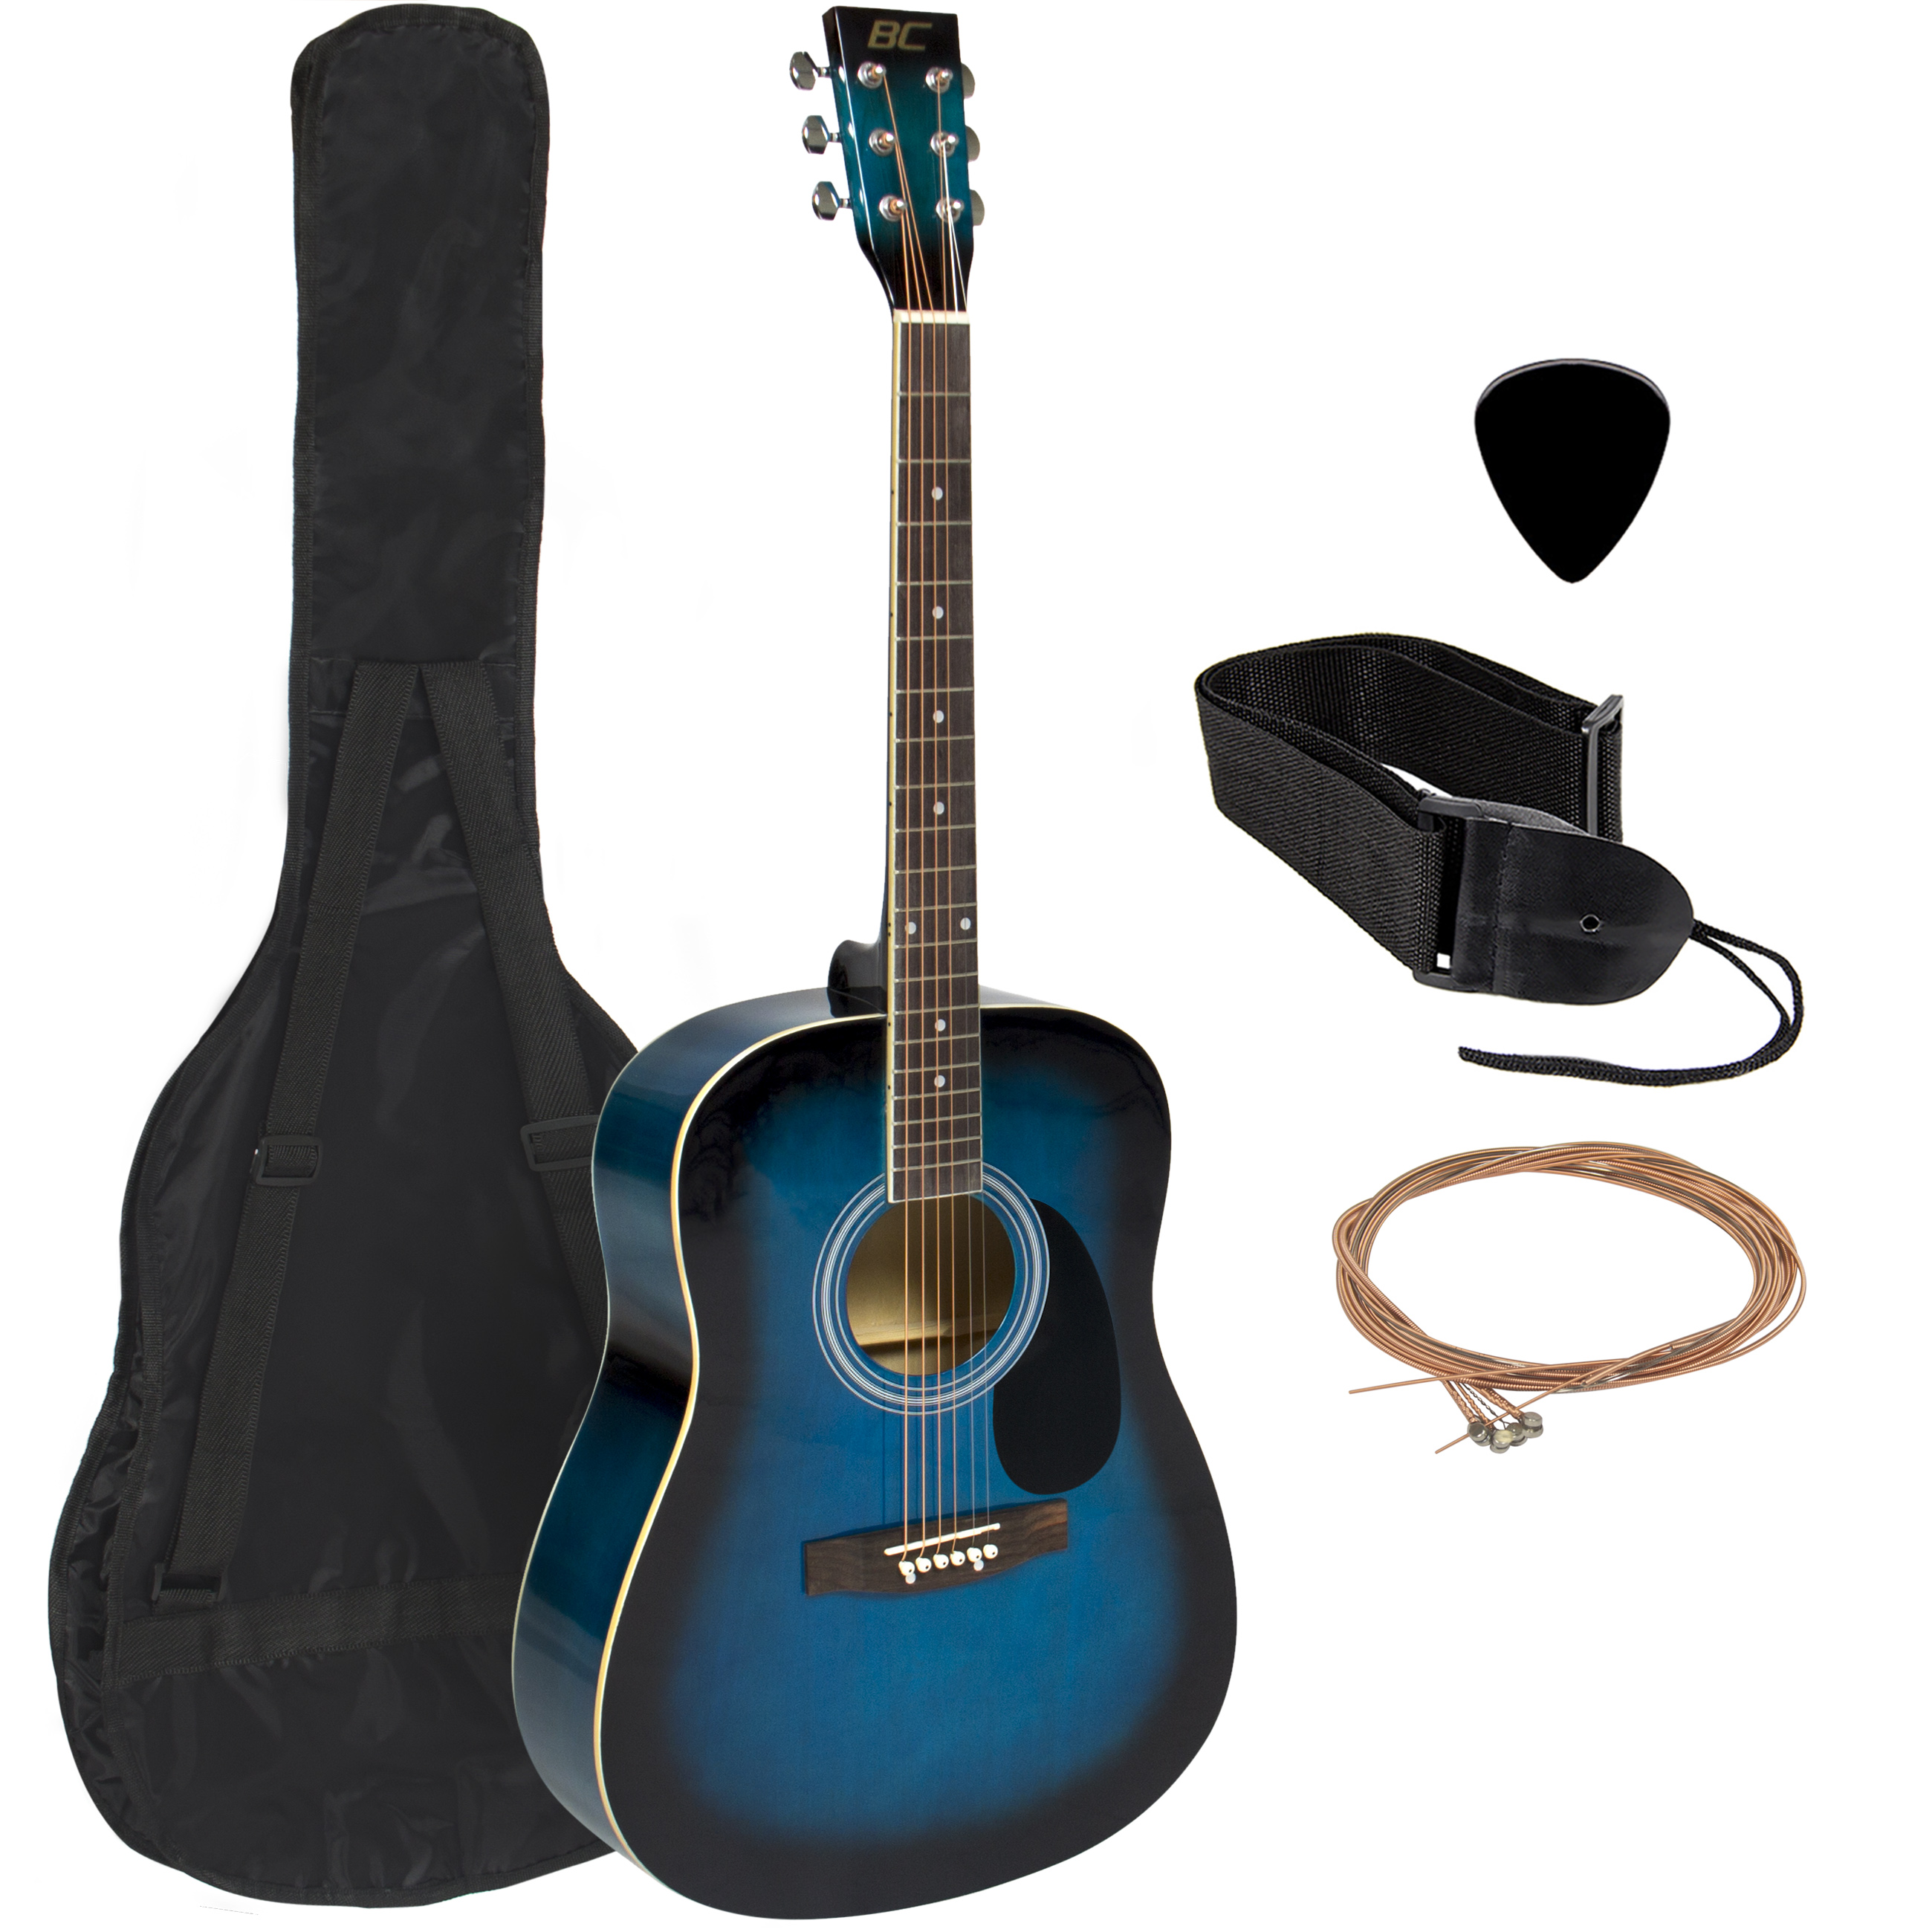 "Best Choice Products Acoustic Guitar 41"" Full Size Adult w/ Guitar Pick & Accessories - Blue"